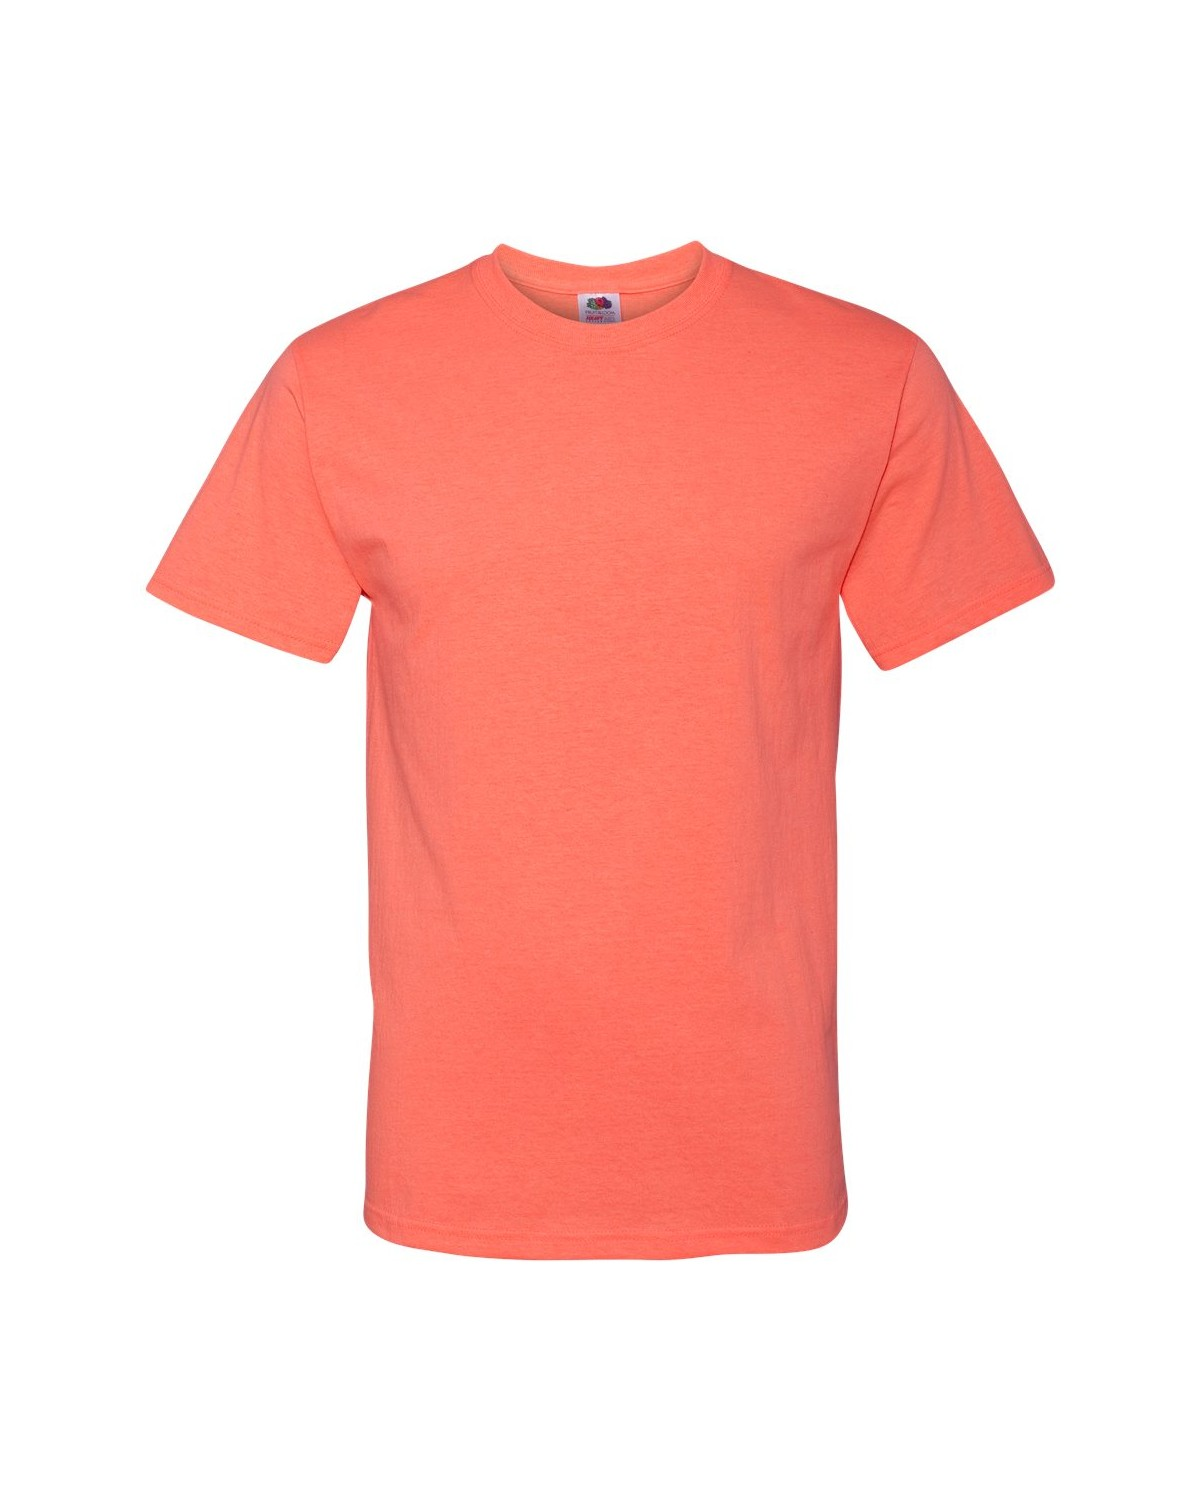 3930R Fruit of the Loom Retro Heather Coral